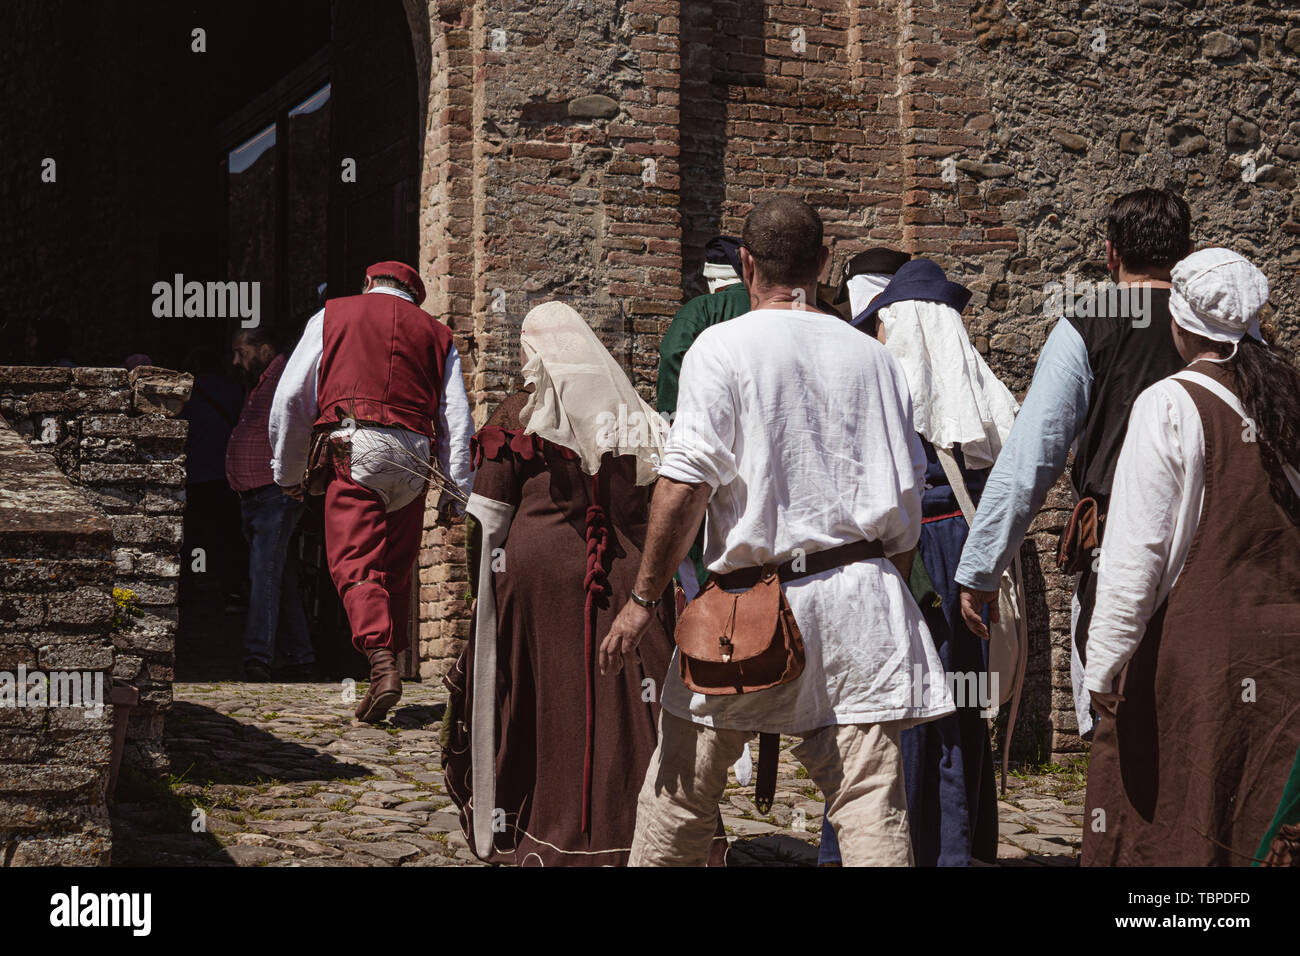 Group of unrecognizable people dressed in medieval costumes walking down an ancient street leading to a castle - Stock Image